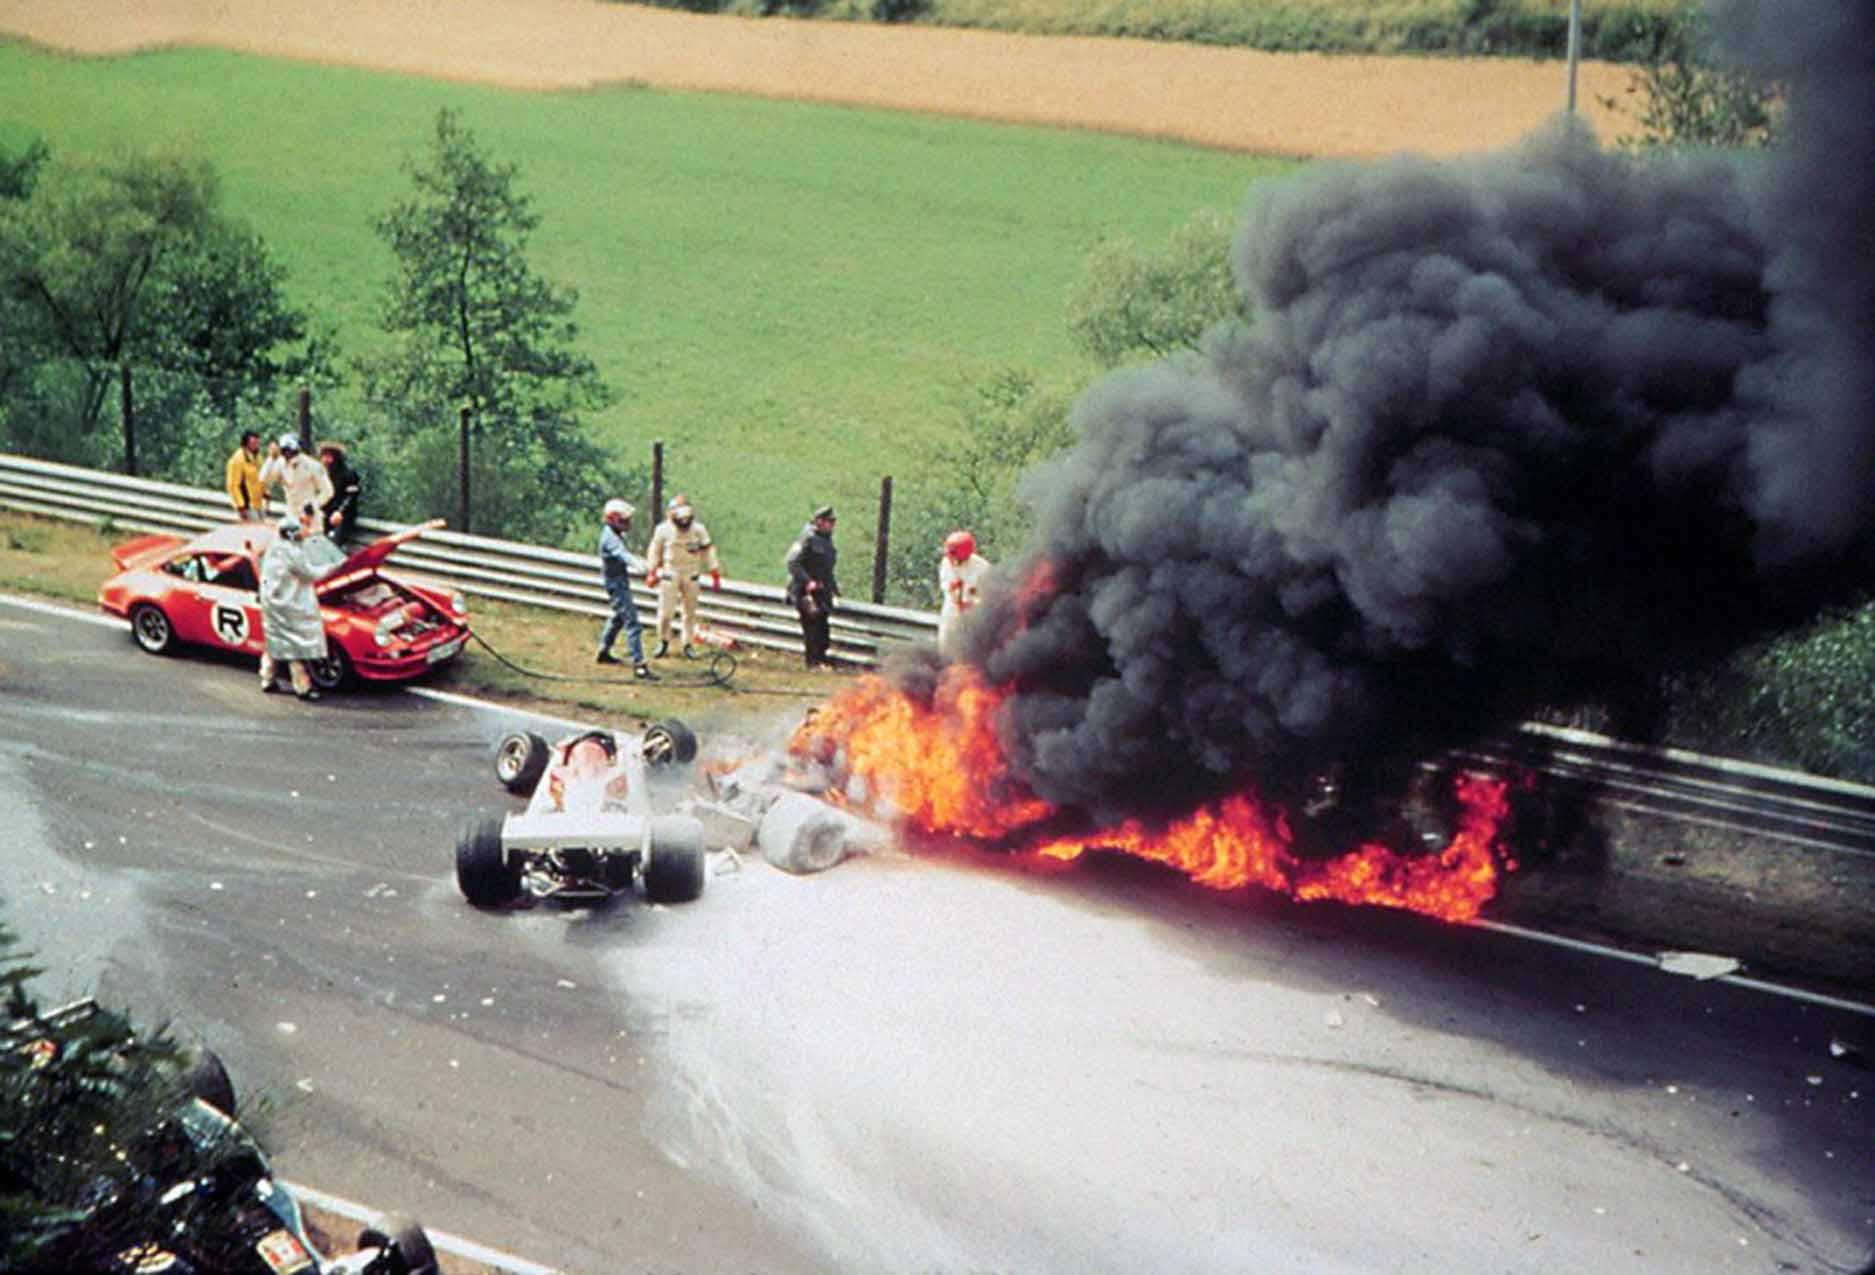 Edwards dragged Lauda from his Ferrari after it caught fire in Germany